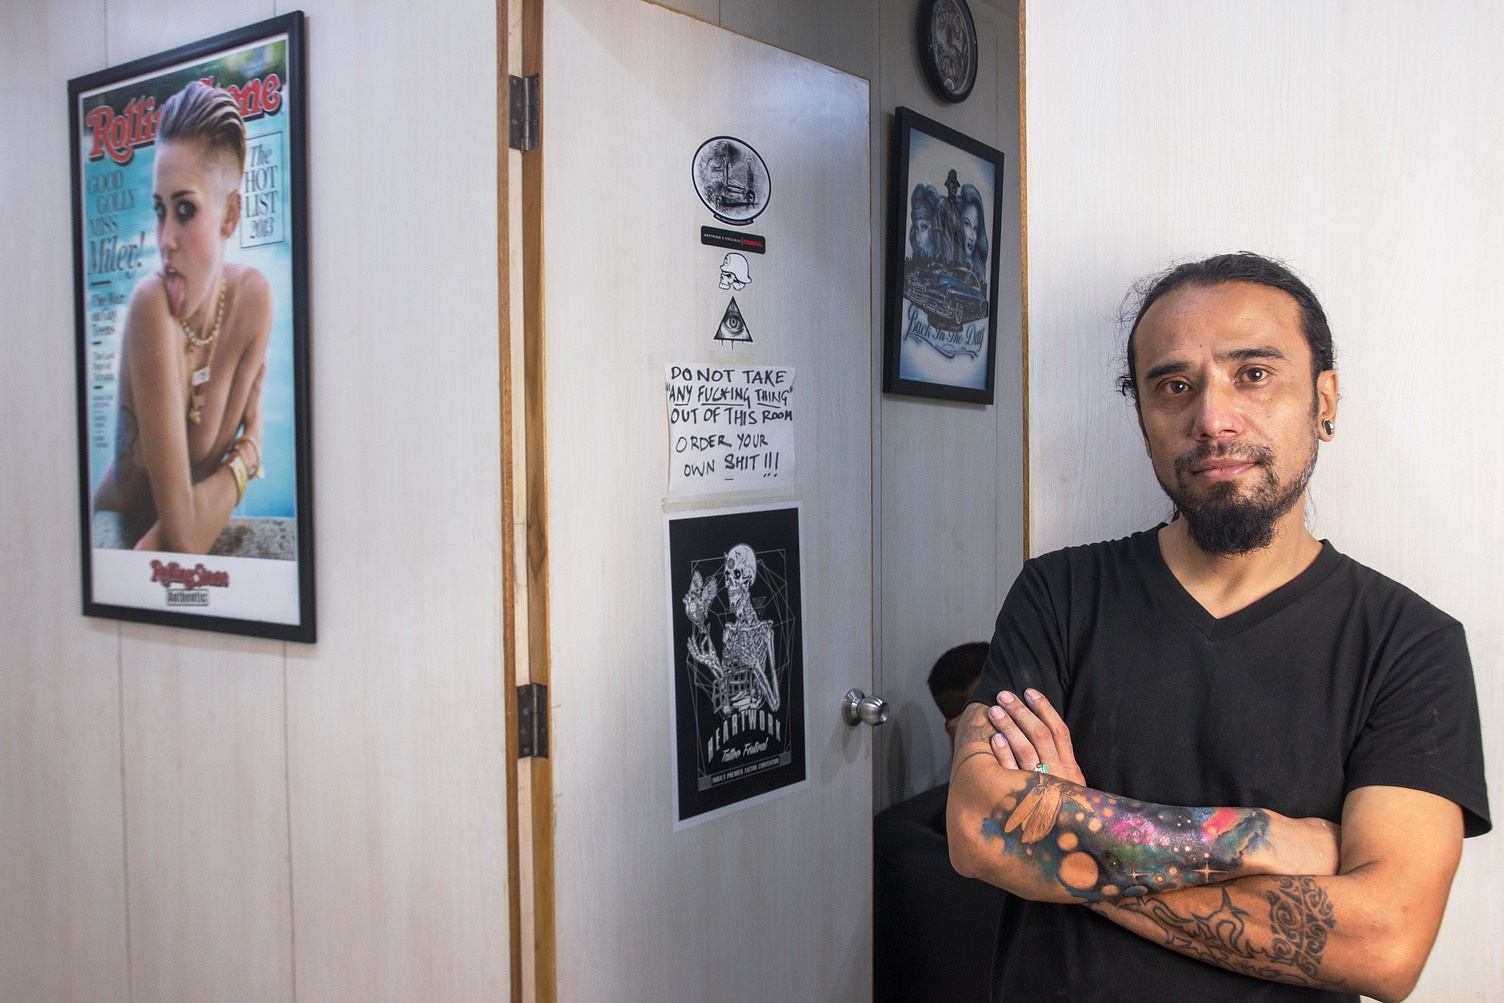 Hendry Lama is from Kalimpong and now works as a tattoo artist in Greater Kailash, New Delhi